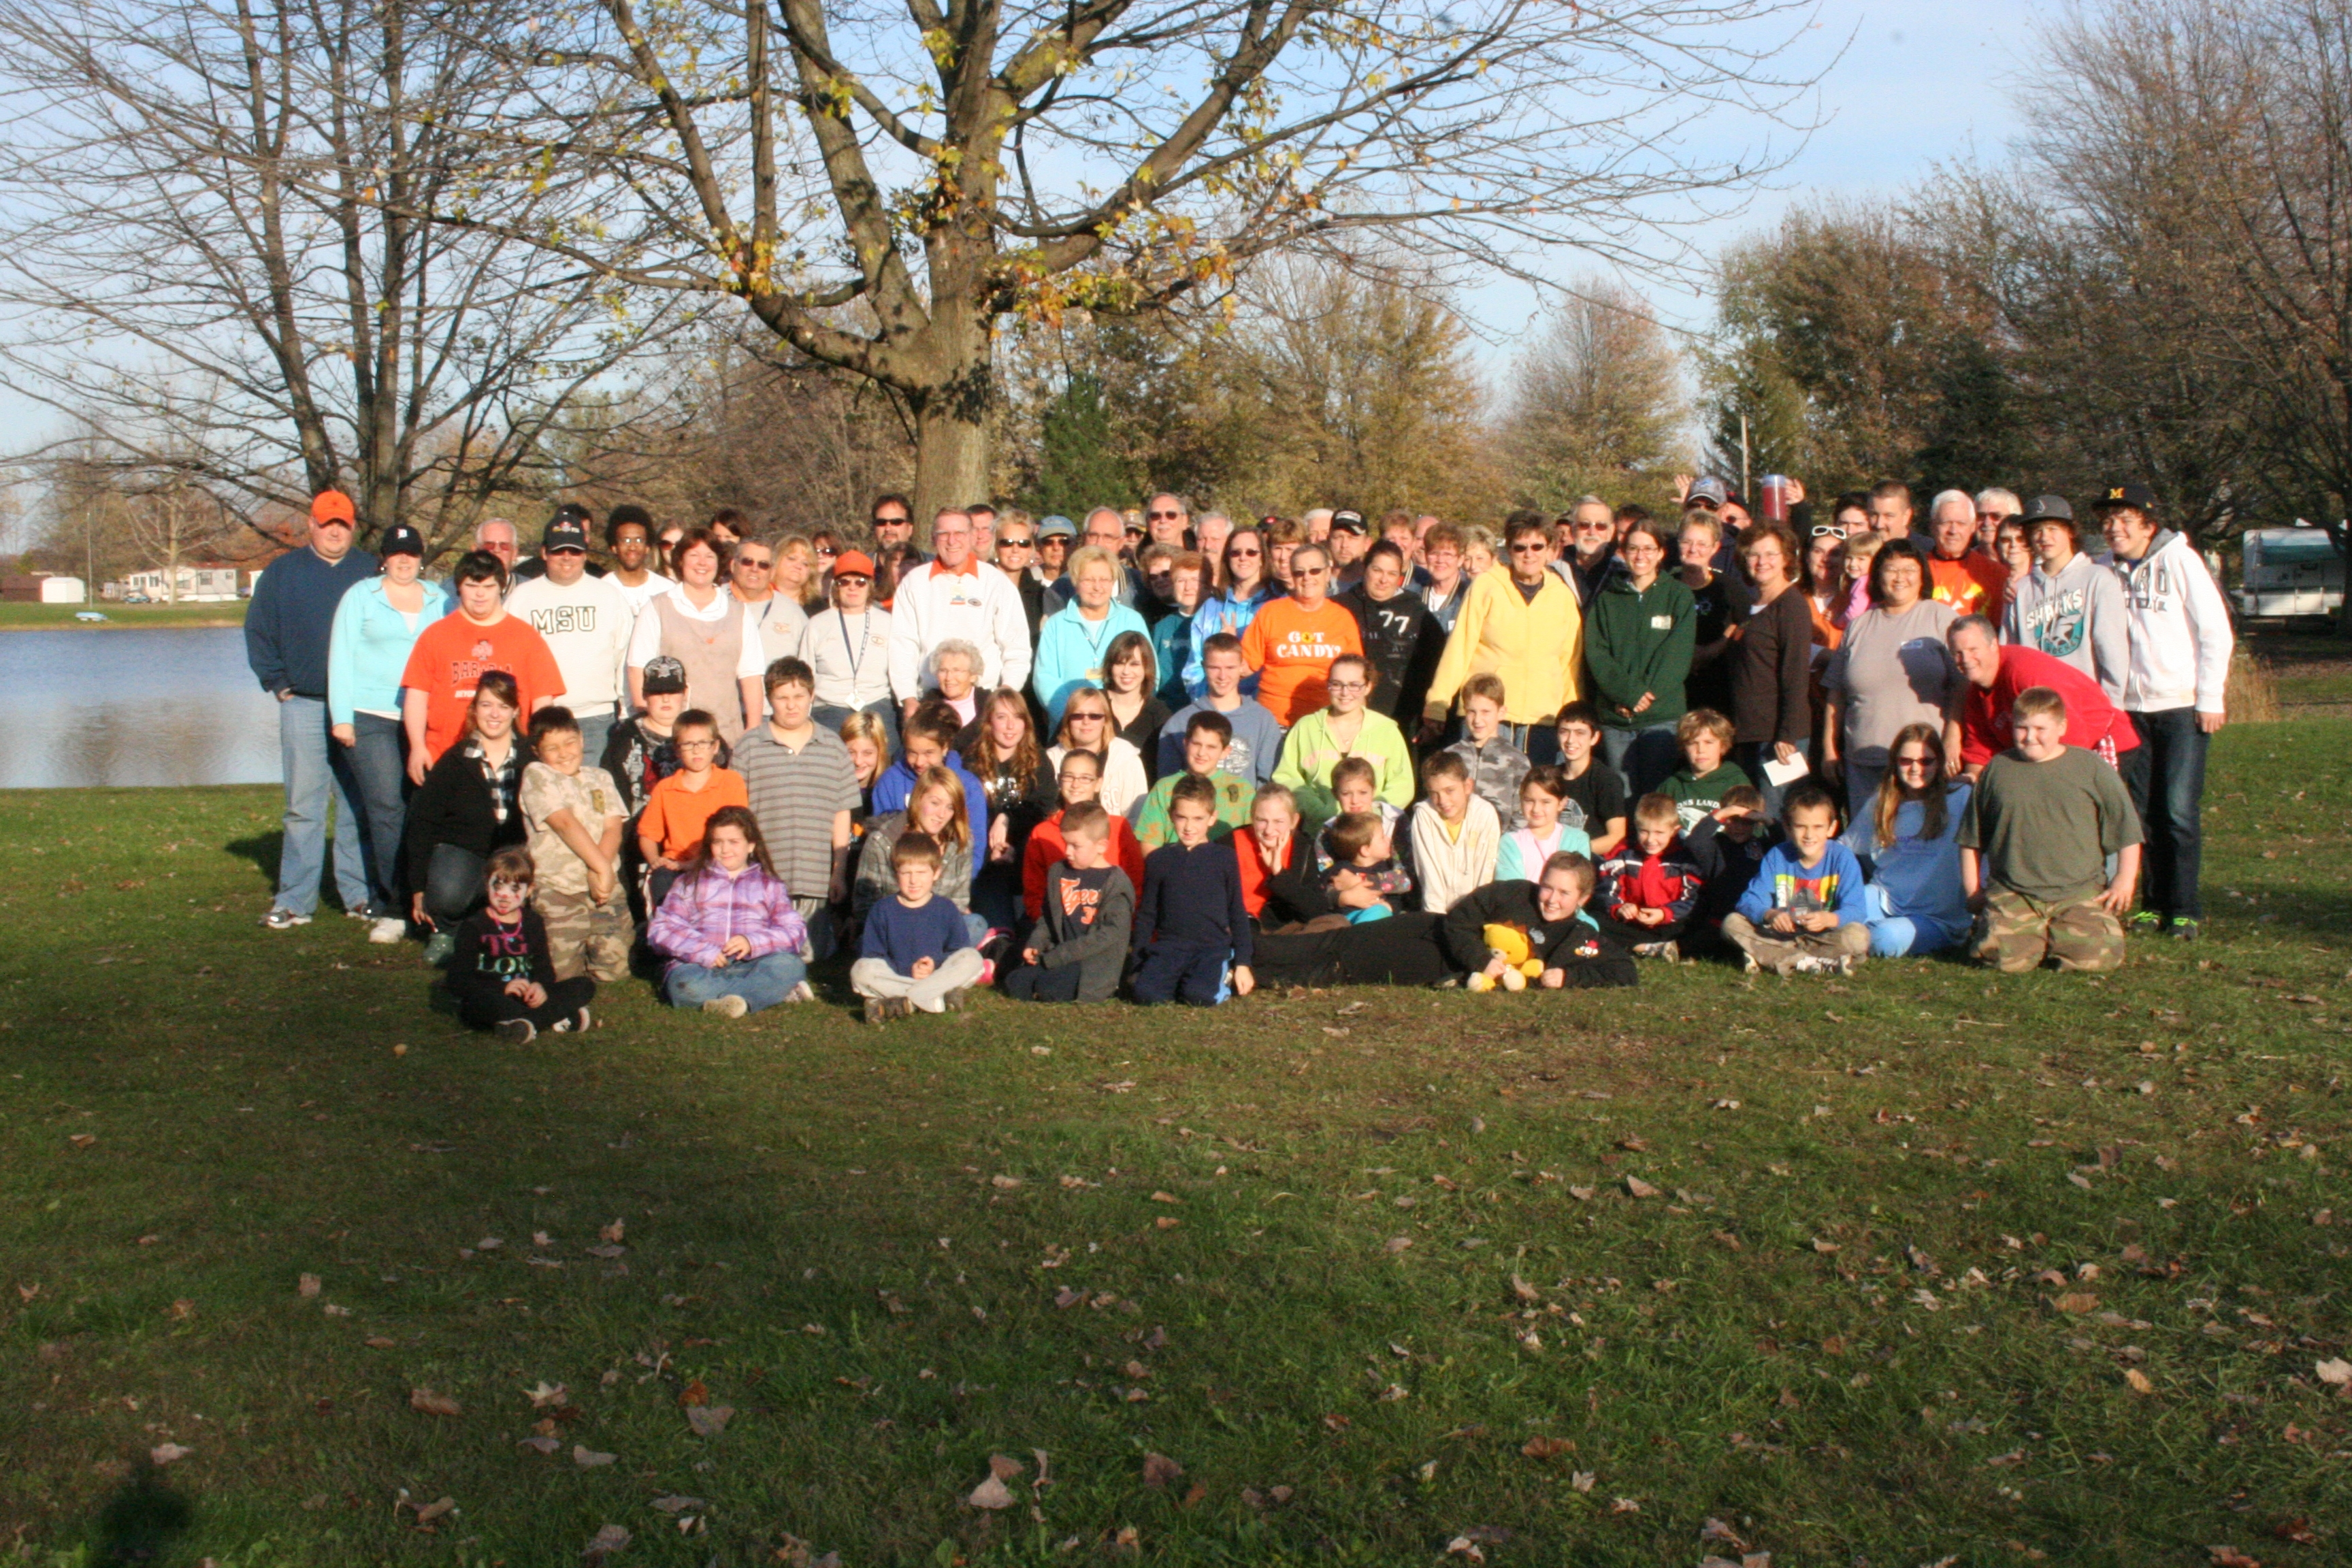 wagontrain-group-photo-october-2011.jpg